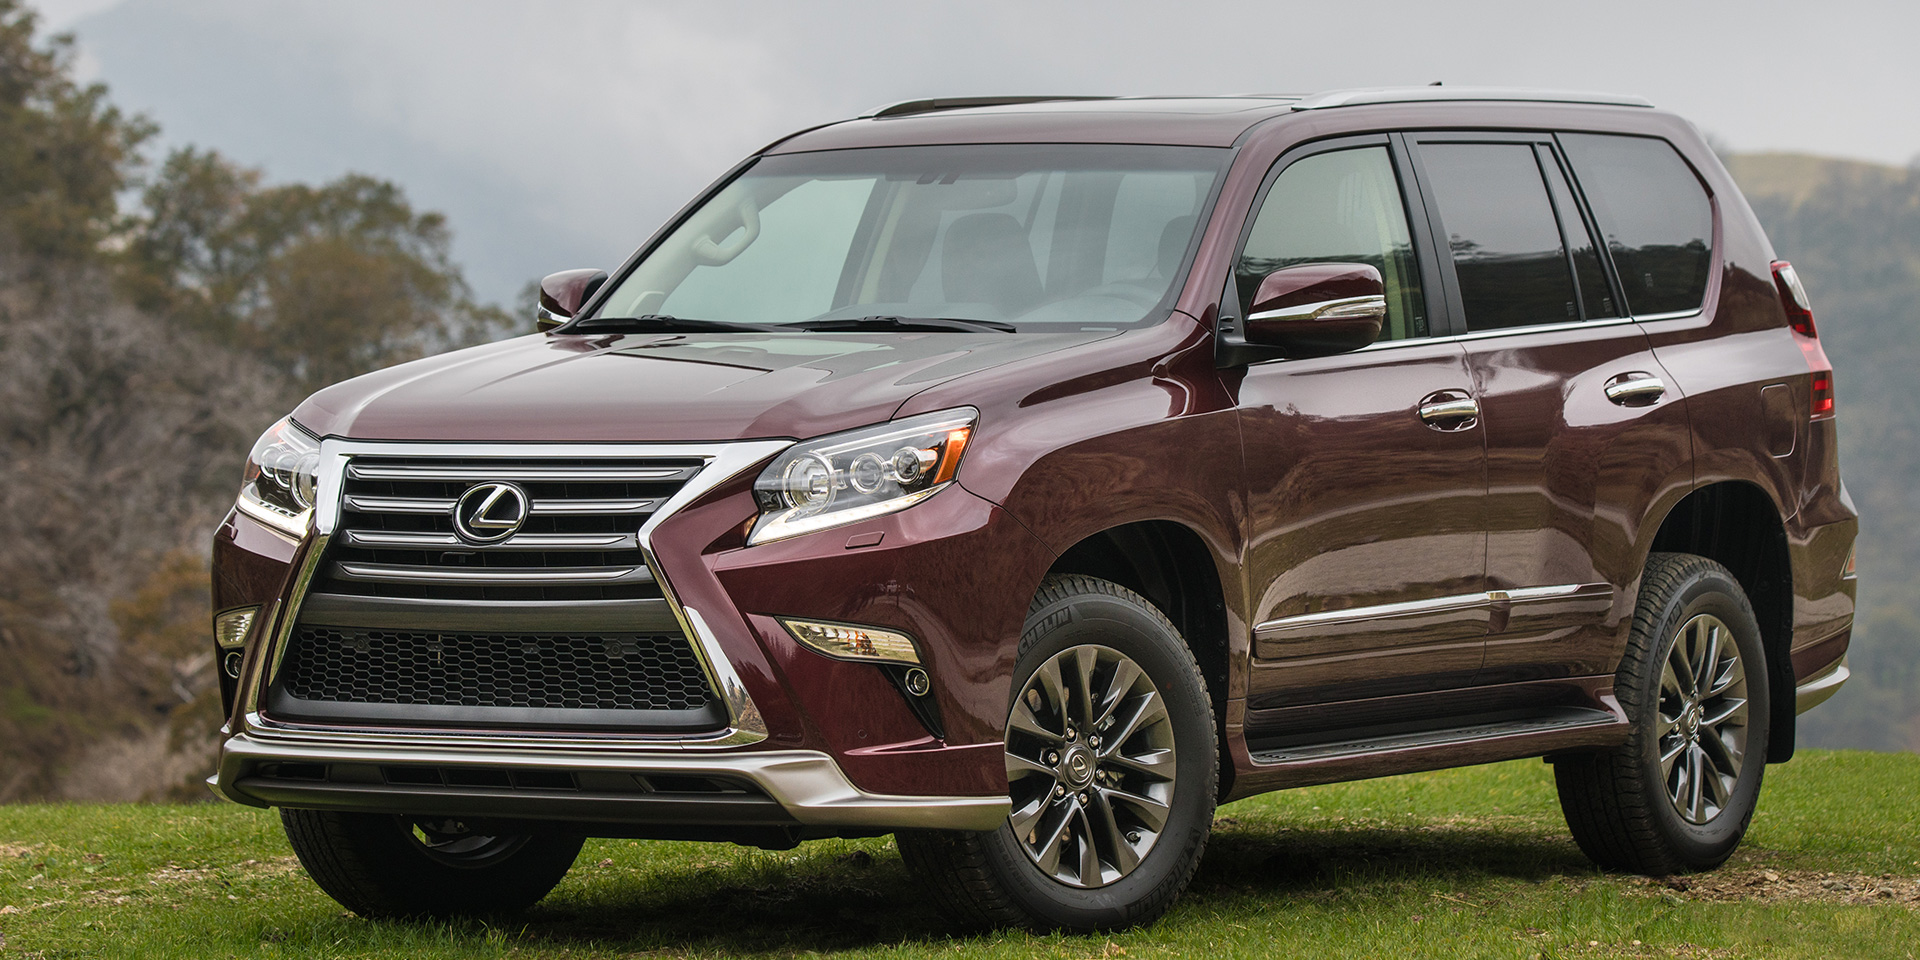 2018 lexus gx vehicles on display chicago auto show. Black Bedroom Furniture Sets. Home Design Ideas